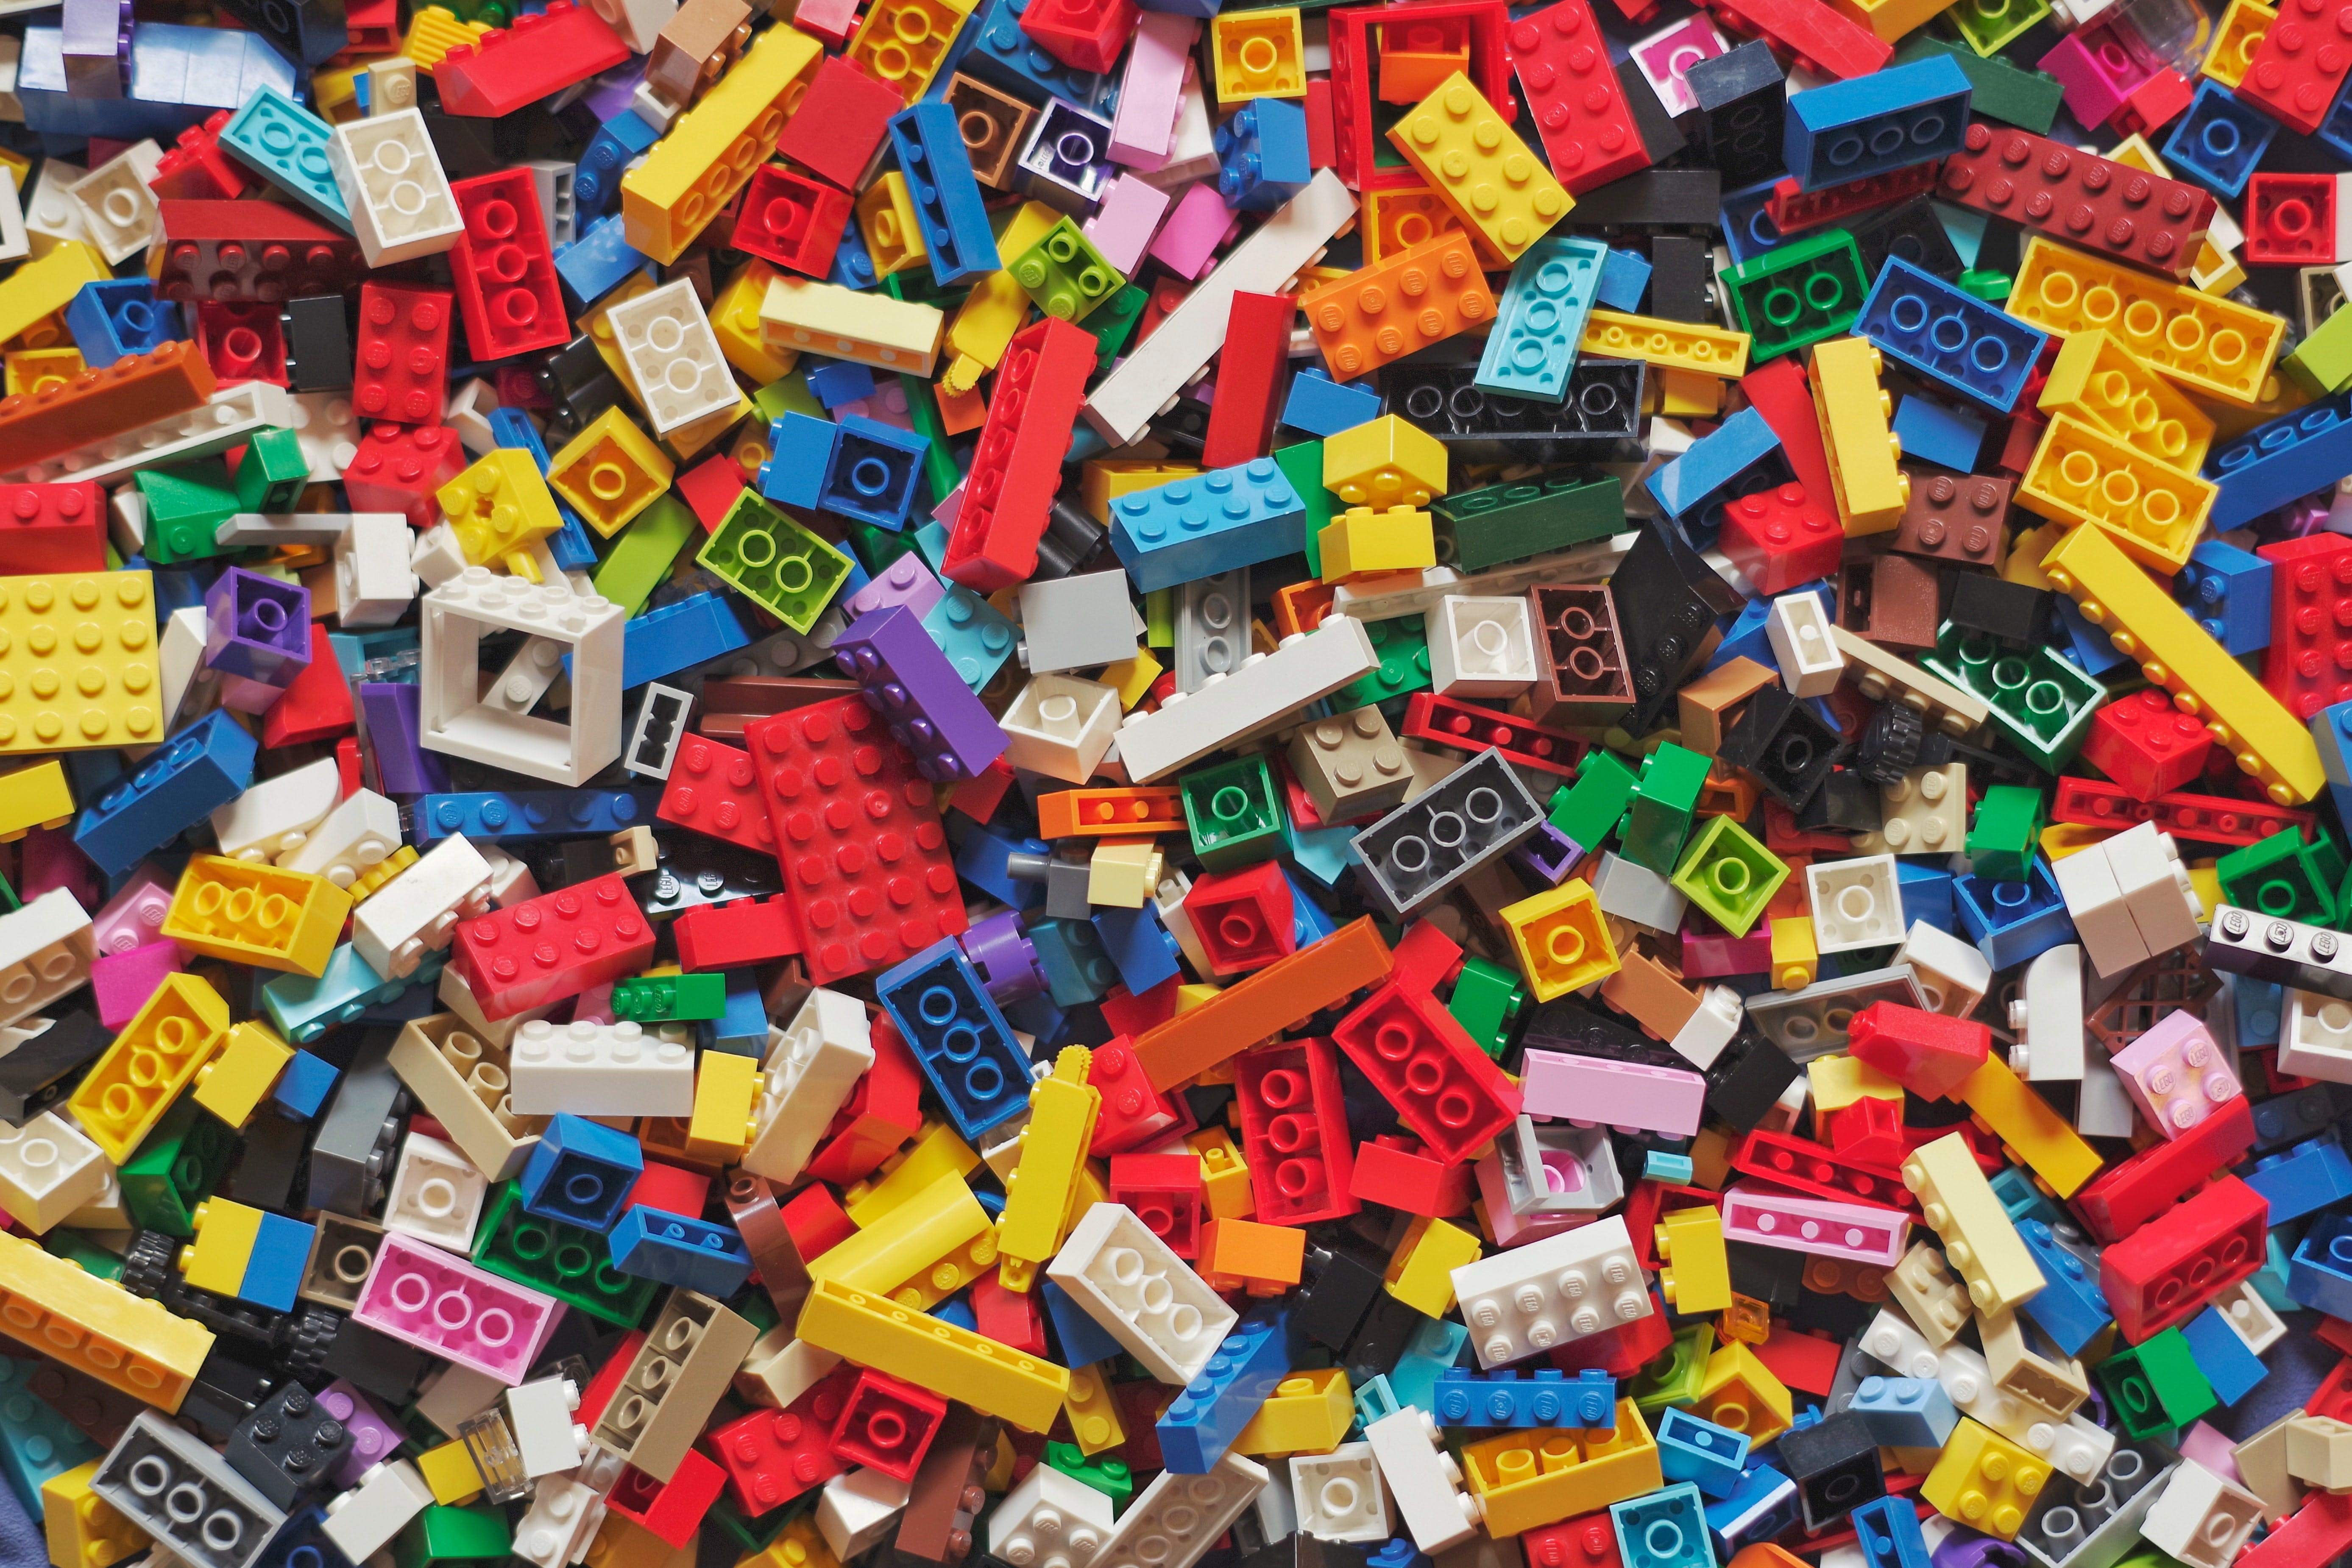 Building a social media strategy for 2021. Image of large pile of multi-colored lego bricks